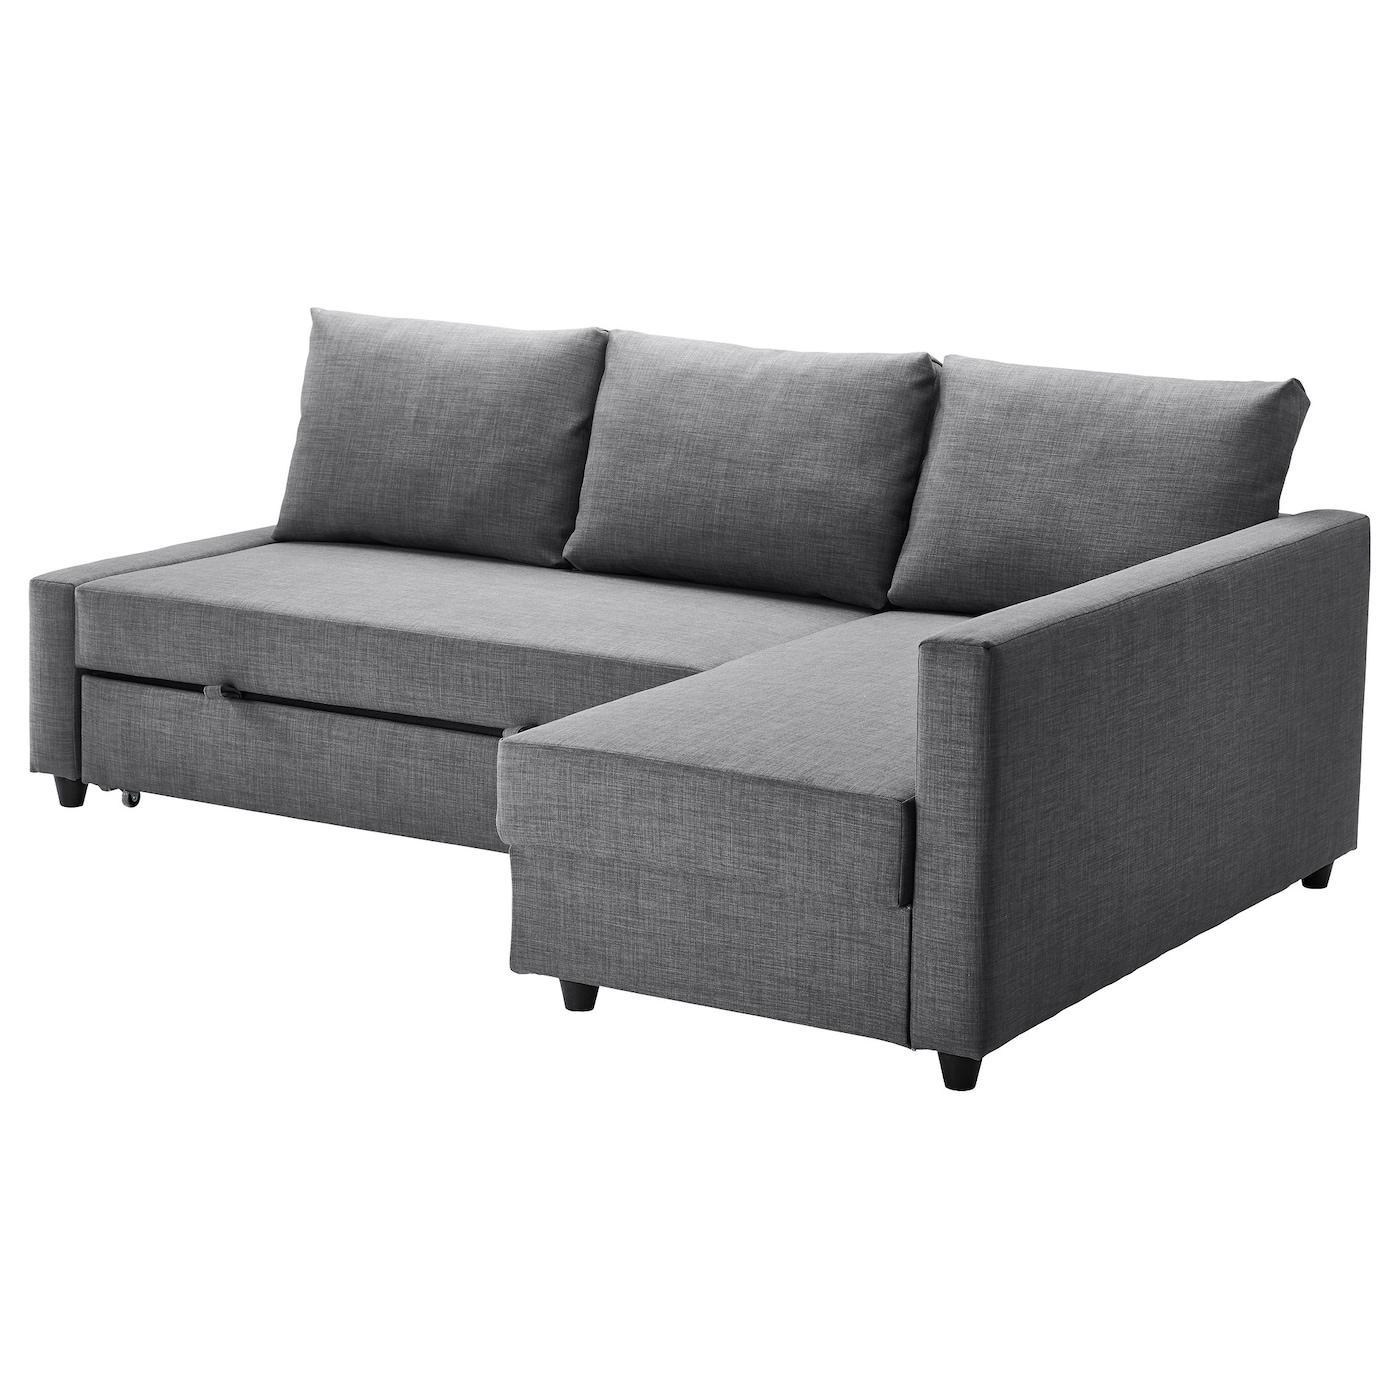 IKEA FRIHETEN Corner Sofa Bed With Storage Sofa, Chaise Longue And Double  Bed In